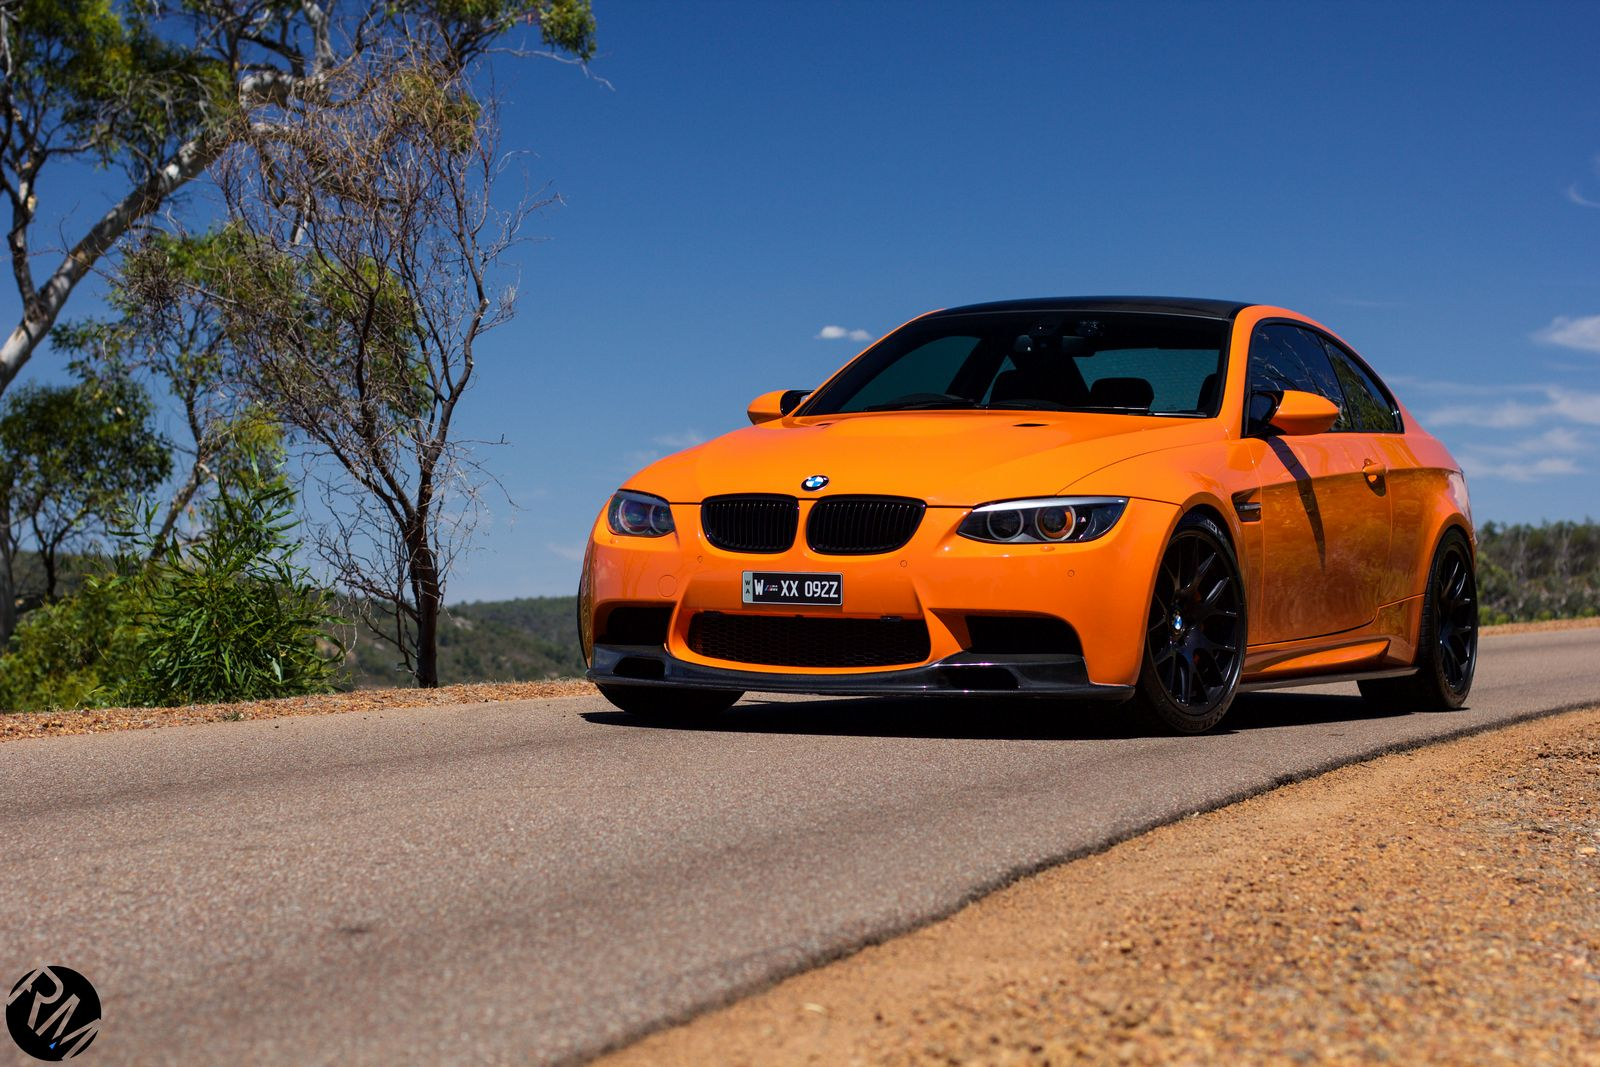 Gallery Tuned Orange Bmw E92 M3 Gtspirit